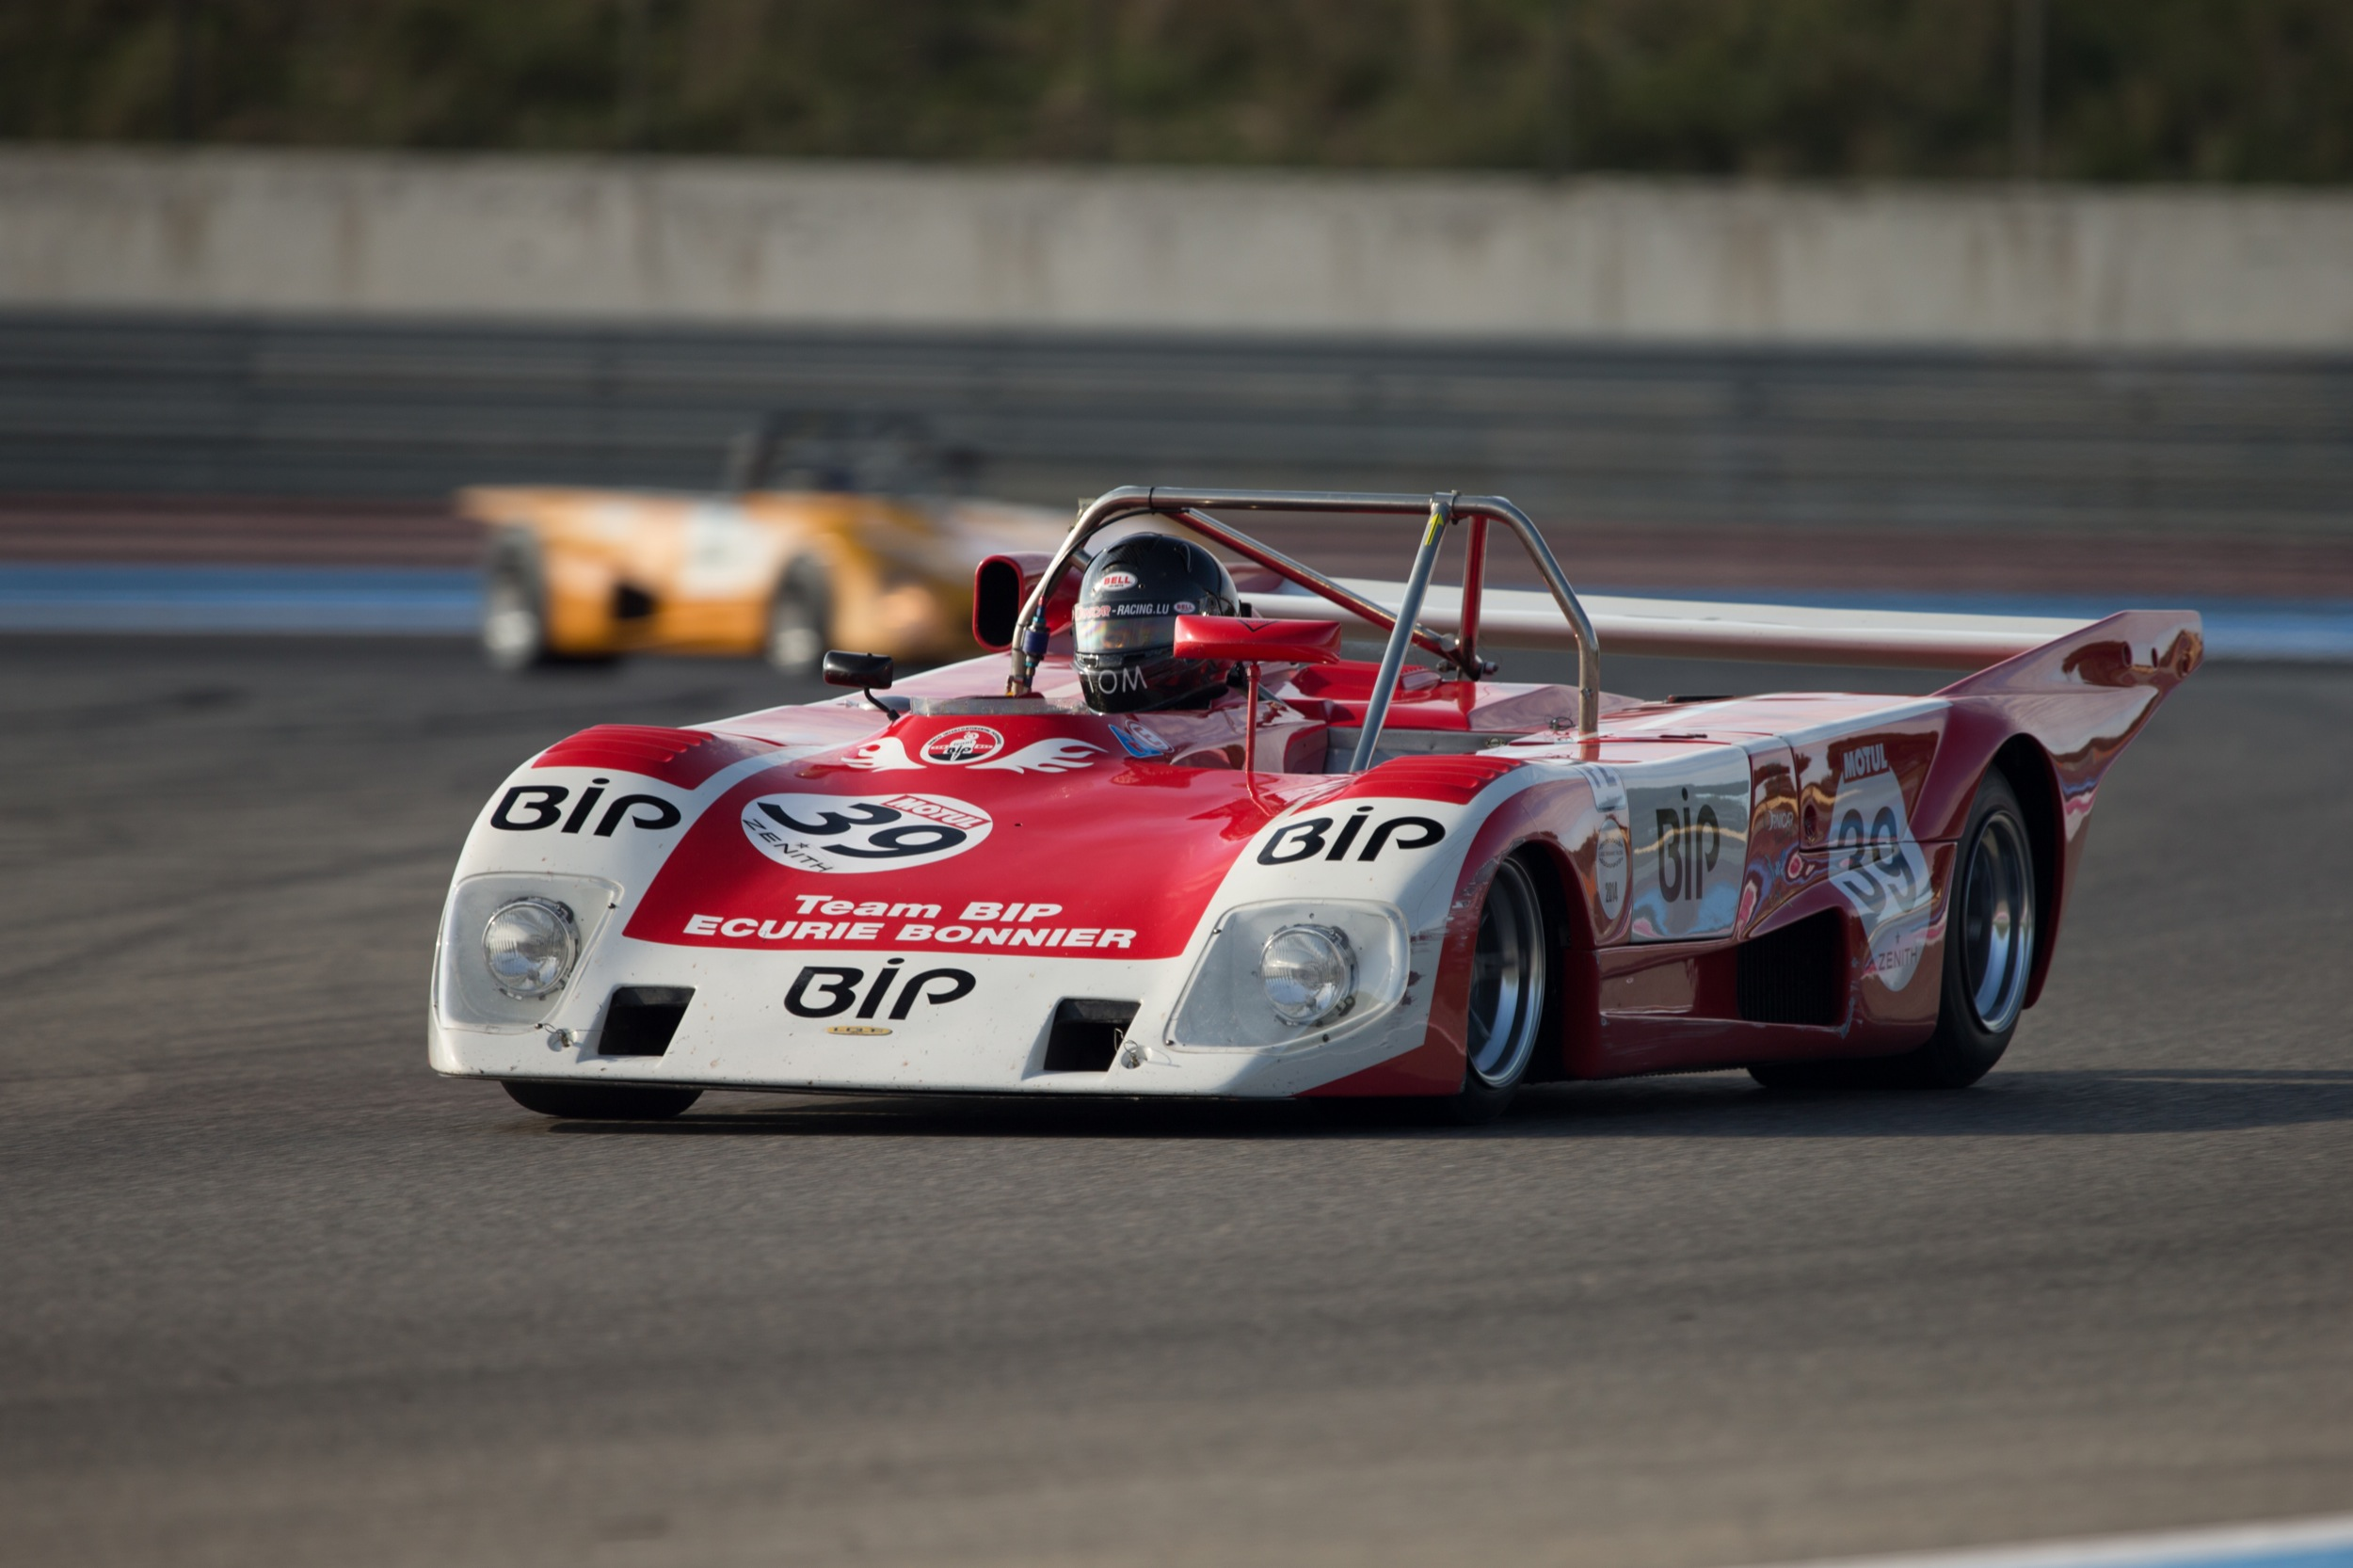 LOLA T292 HU 64 for sale Ascott Collection 18.jpg